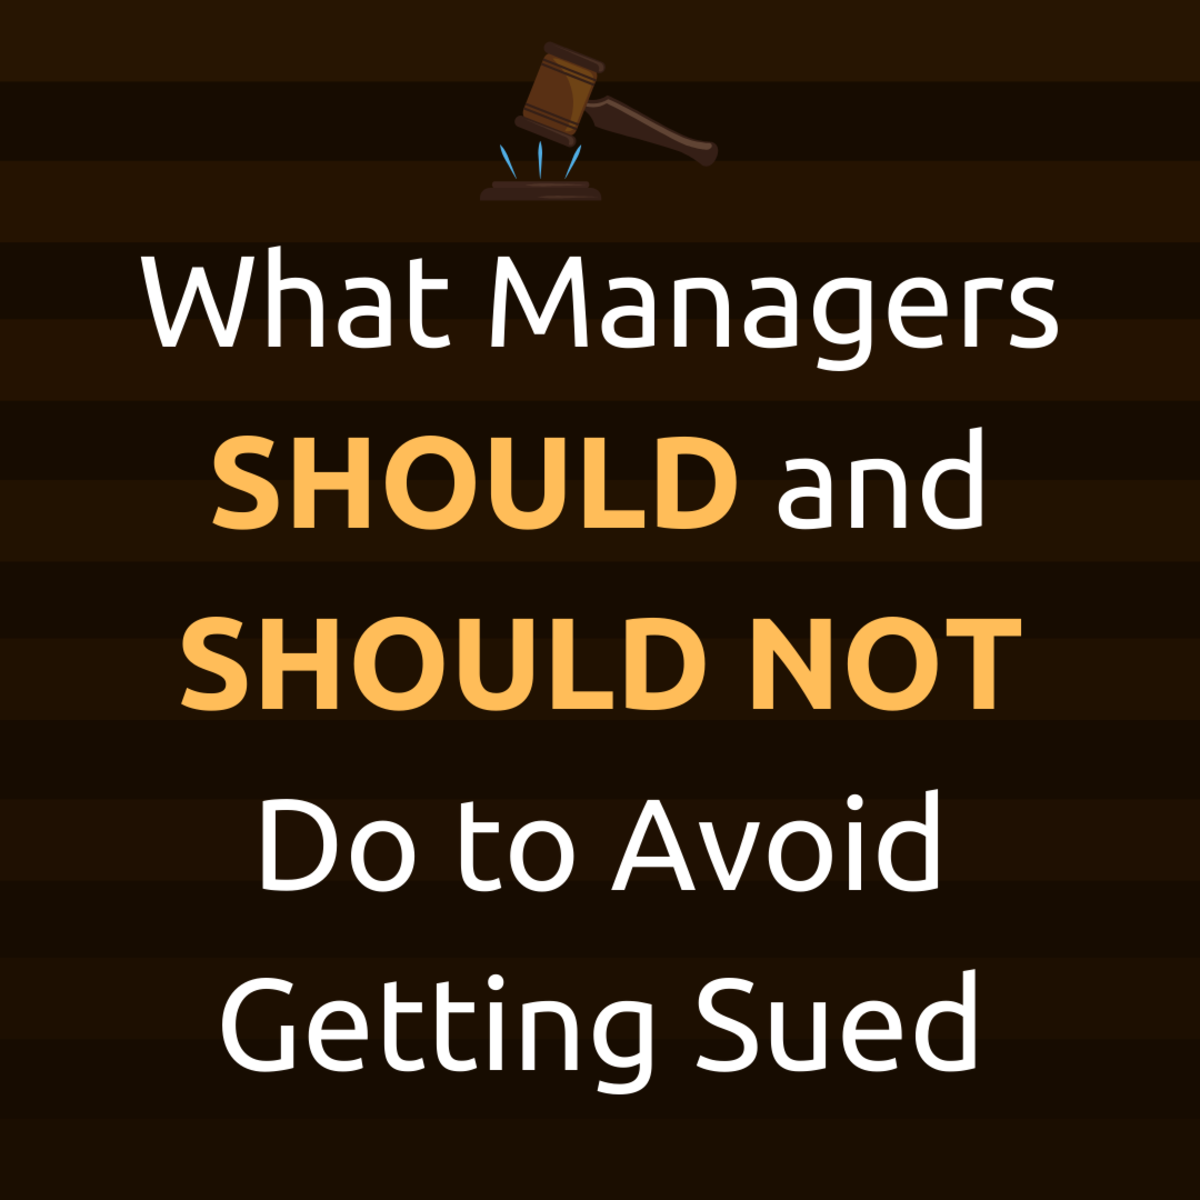 Review 10 things that bully bosses do that cause lawsuits—and what they should do instead to avoid getting sued.